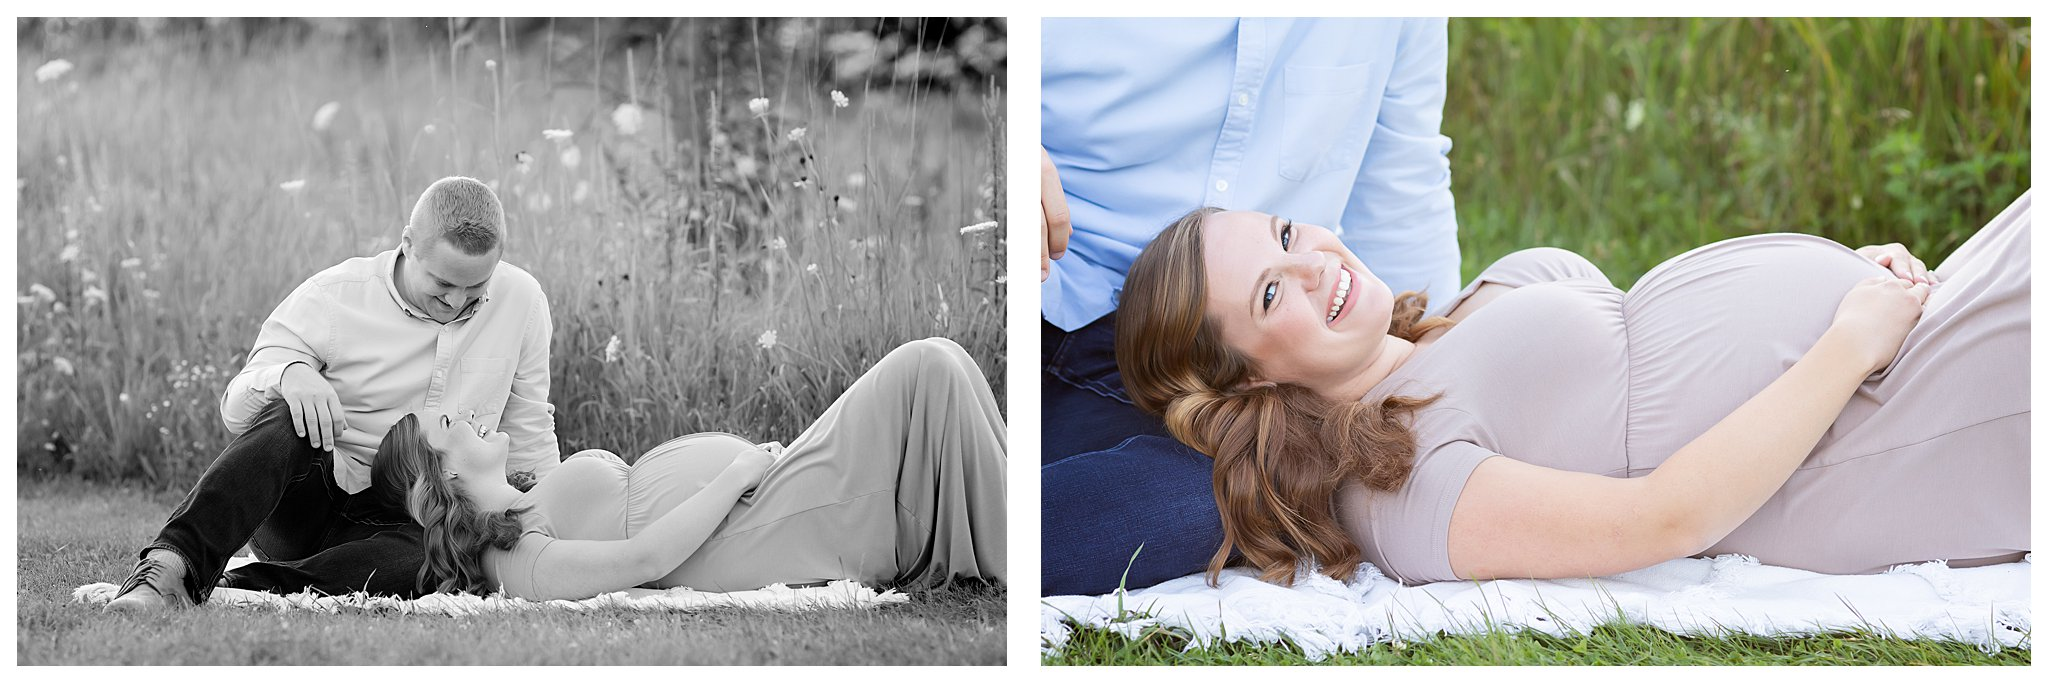 Maternity Pictures | Dexter, Mi Maternity Photographer